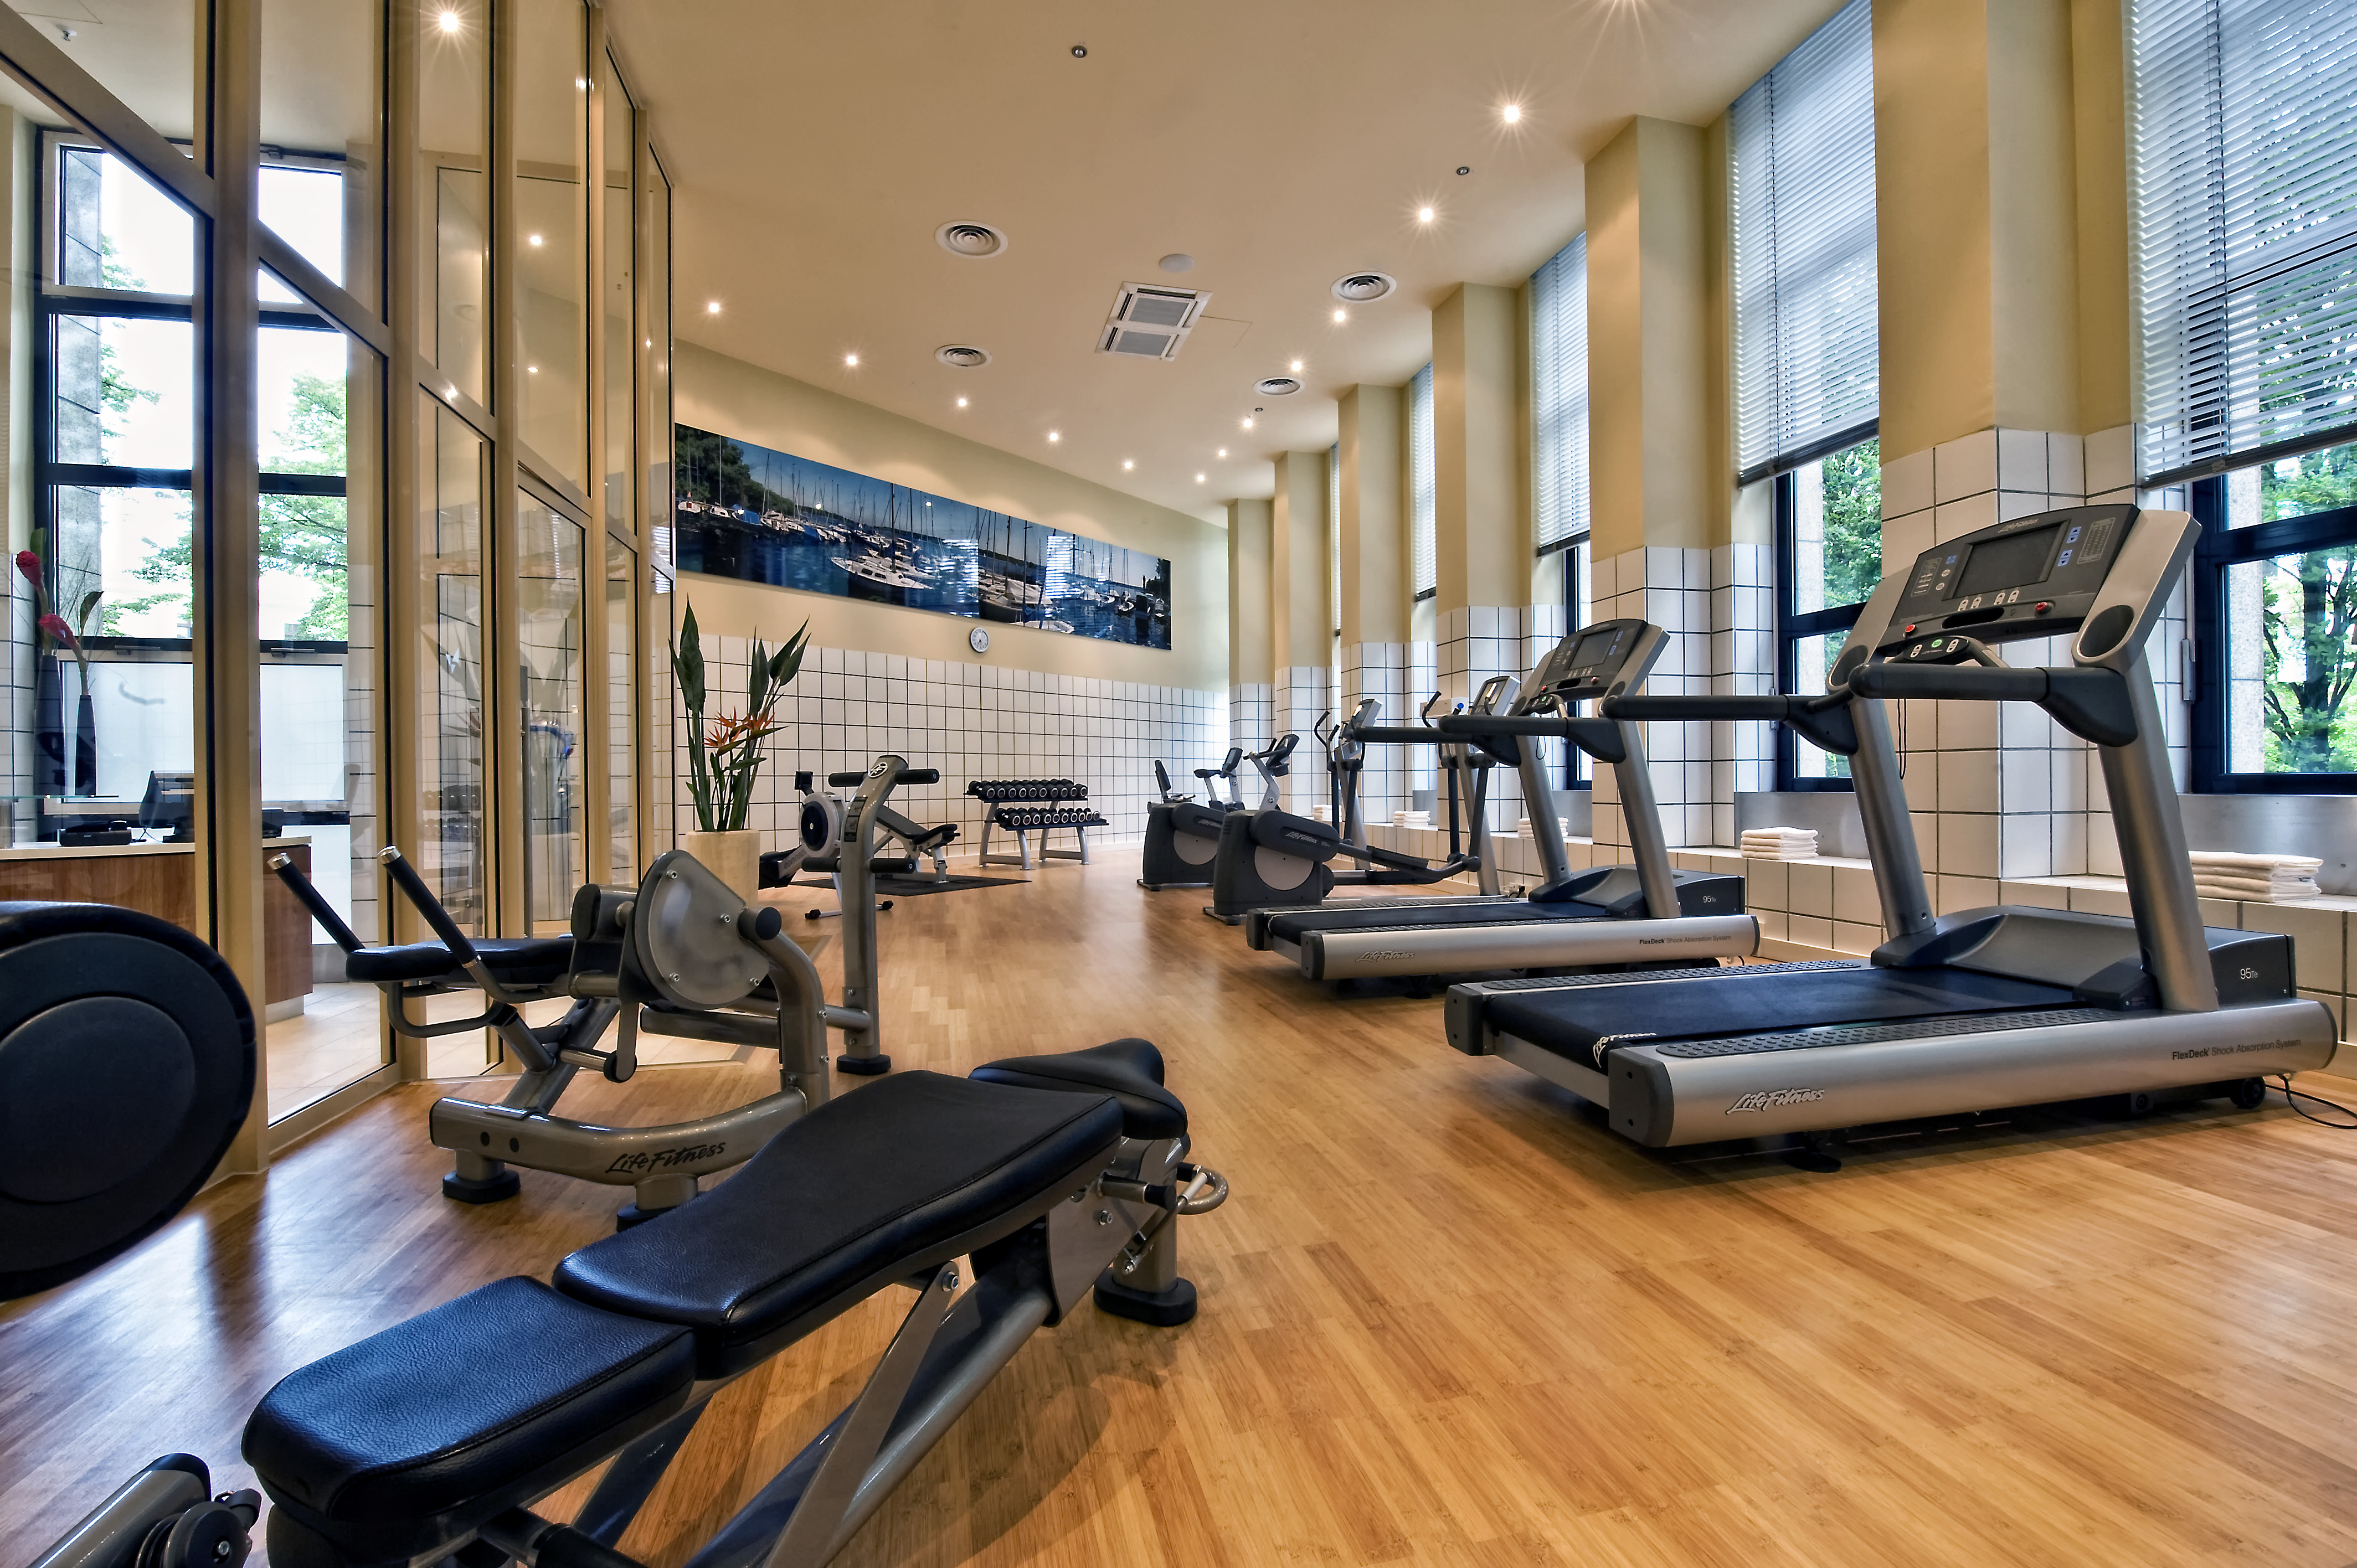 club objective in gym facility This blog is dedicated to health club software, gym management software  as a professional fitness operator, with interest in the gym insight blog.